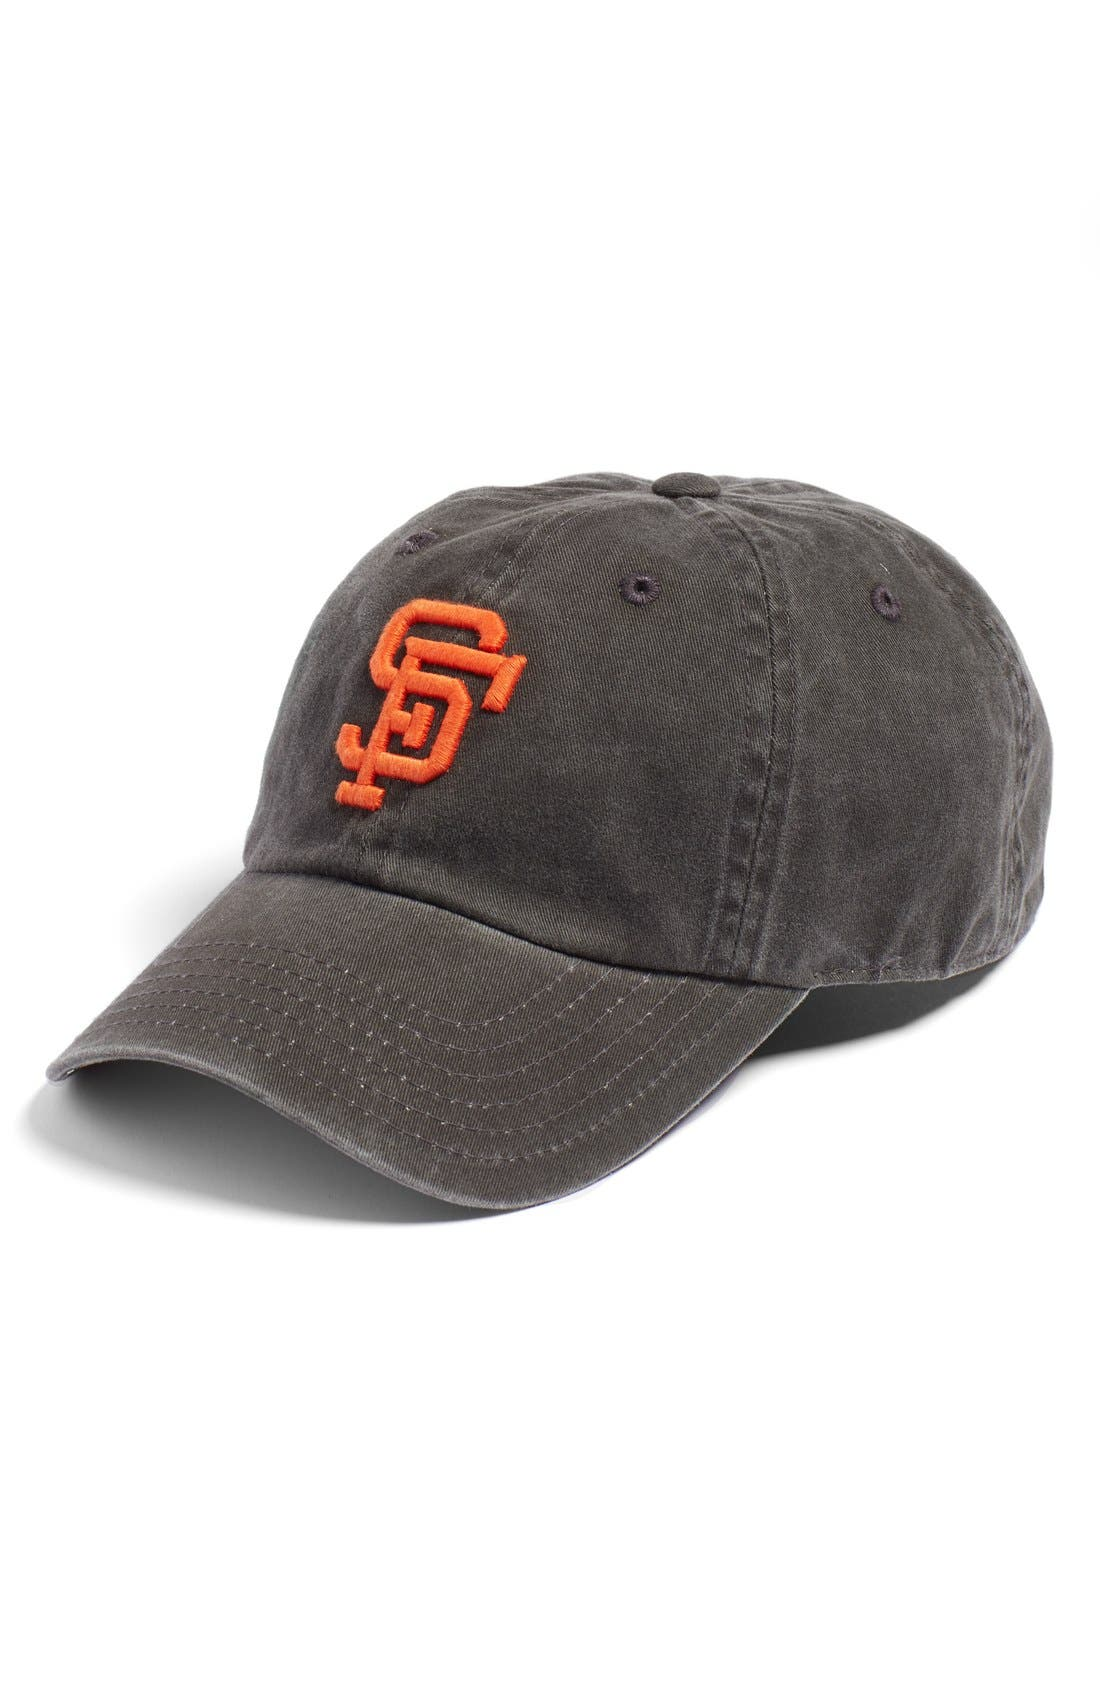 Main Image - American Needle New Raglan San Francisco Giants Baseball Cap